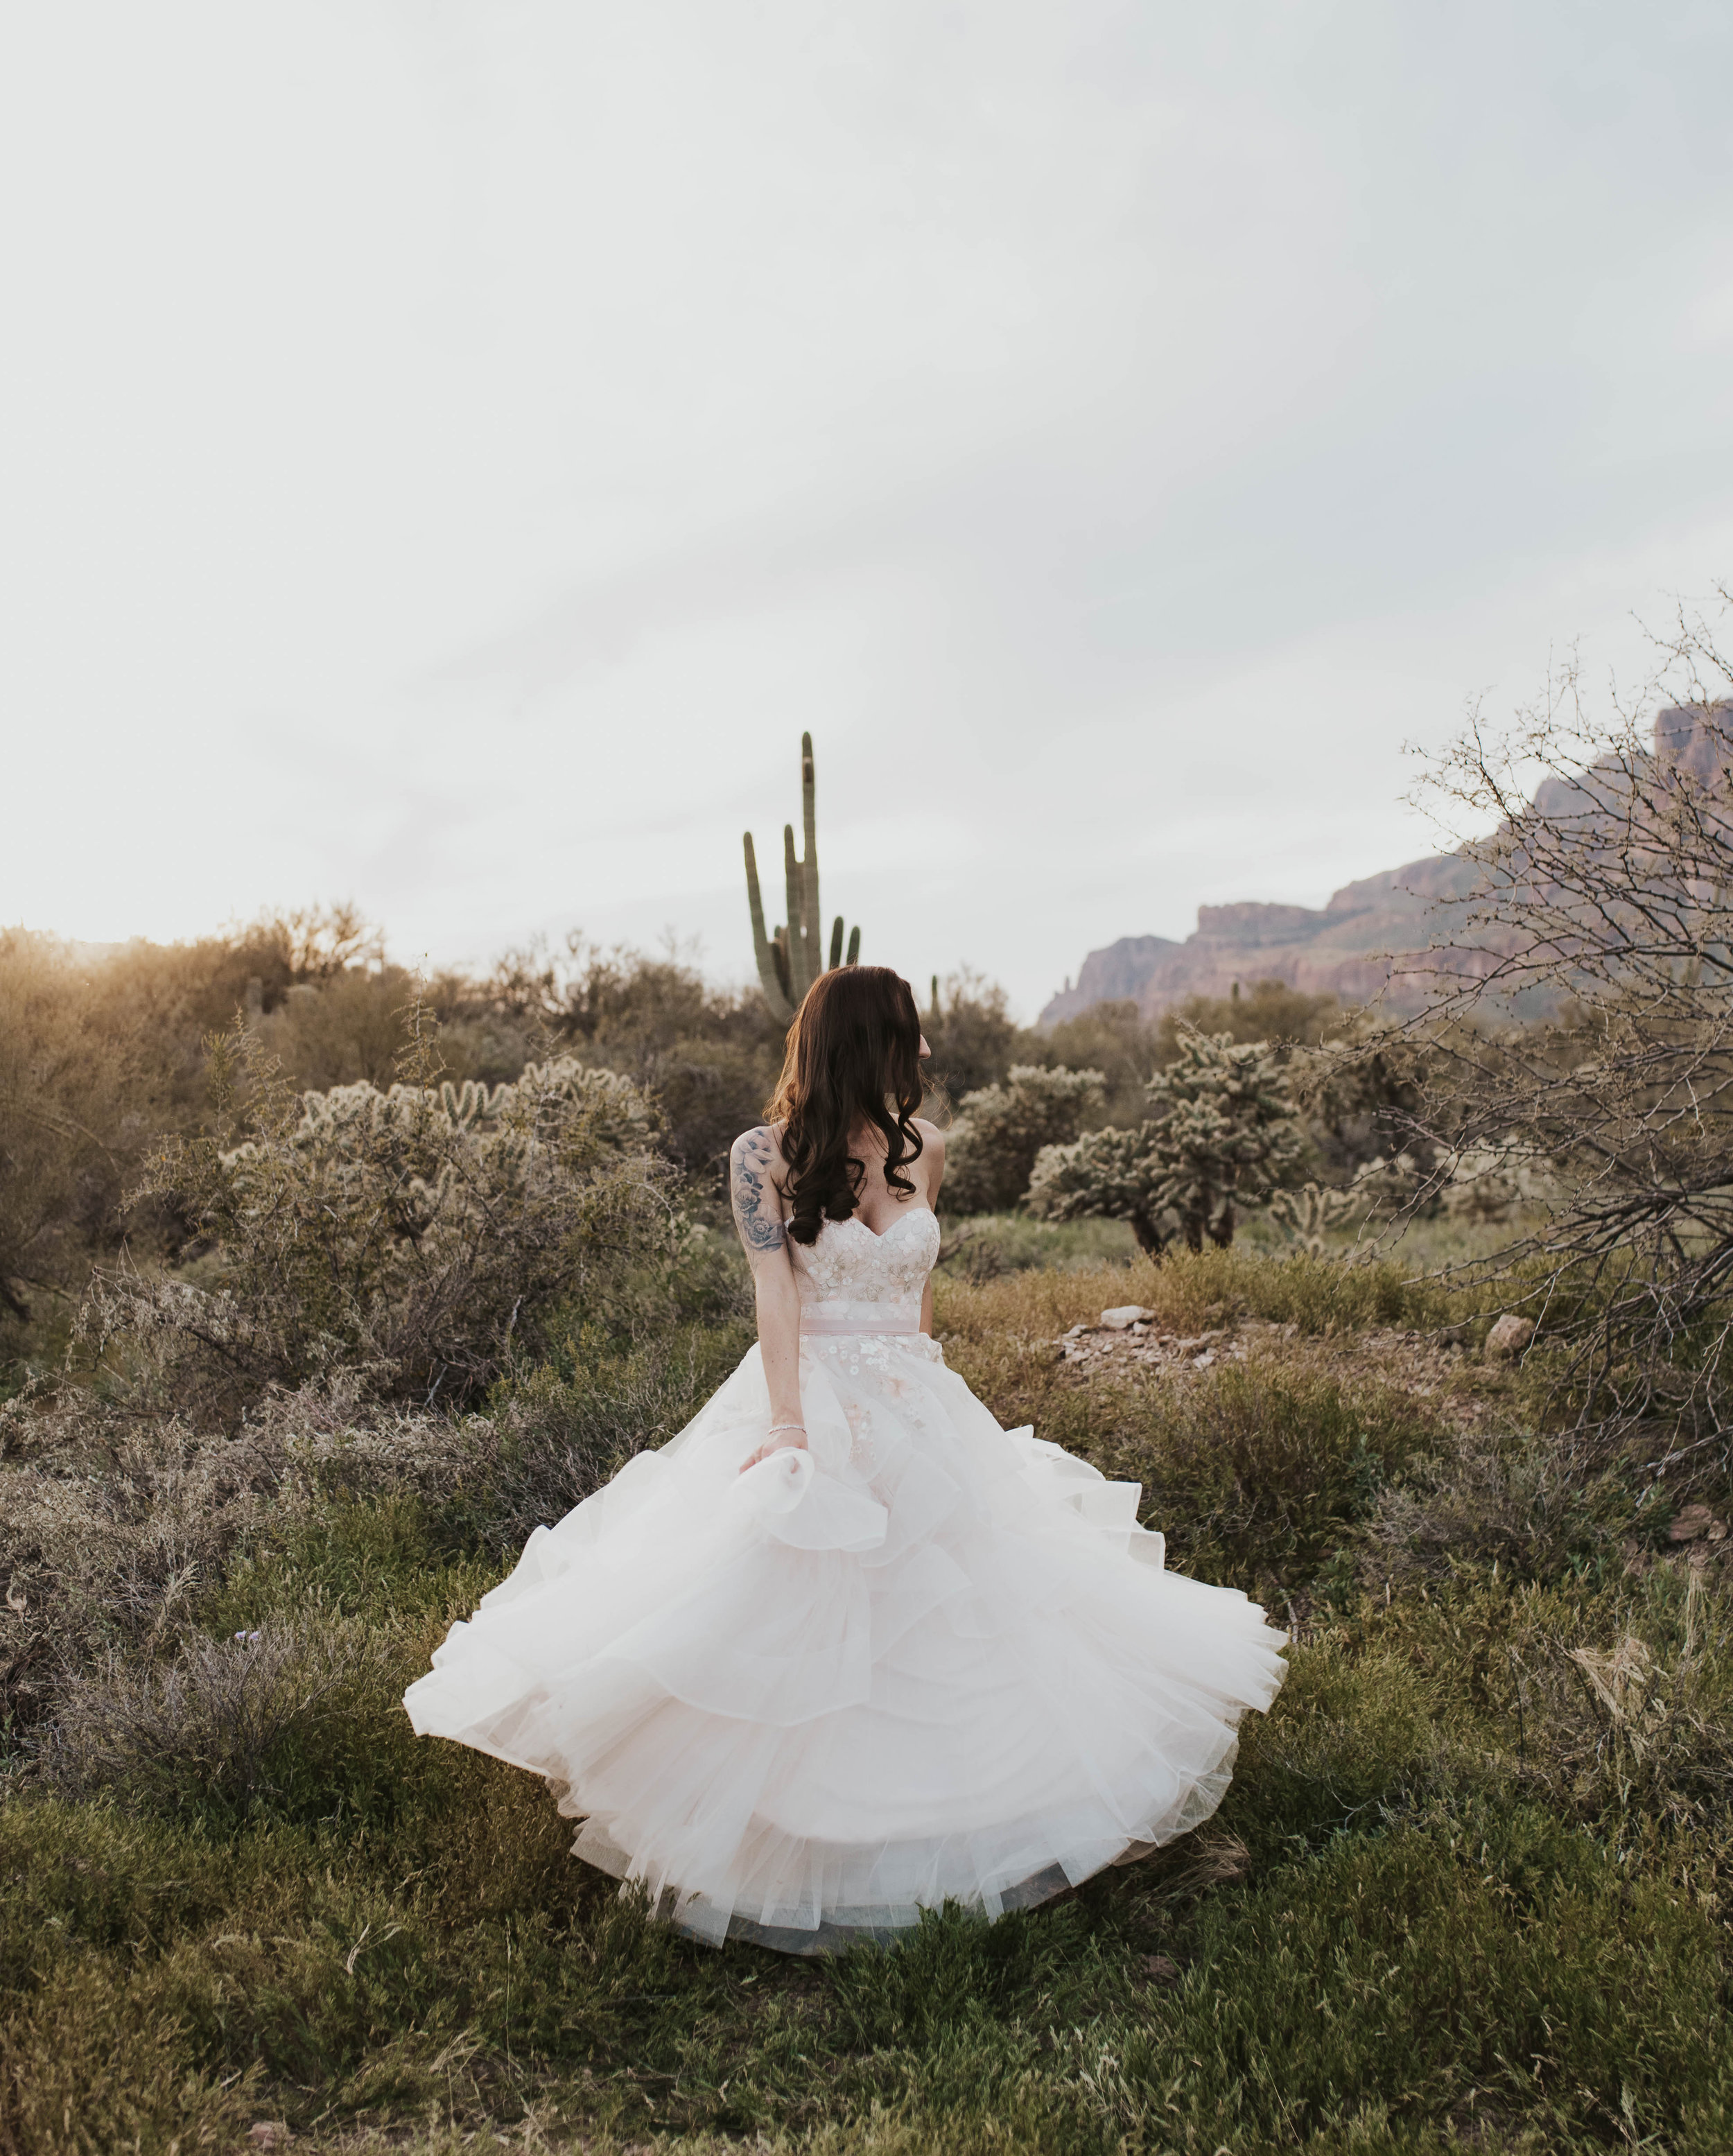 Desert Wedding at Tela Peralta - Arizona florist Phoenix scottsdale Mesa chandler Sedona Flagstaff Prescott - Bridal Portrait Posing Ideas